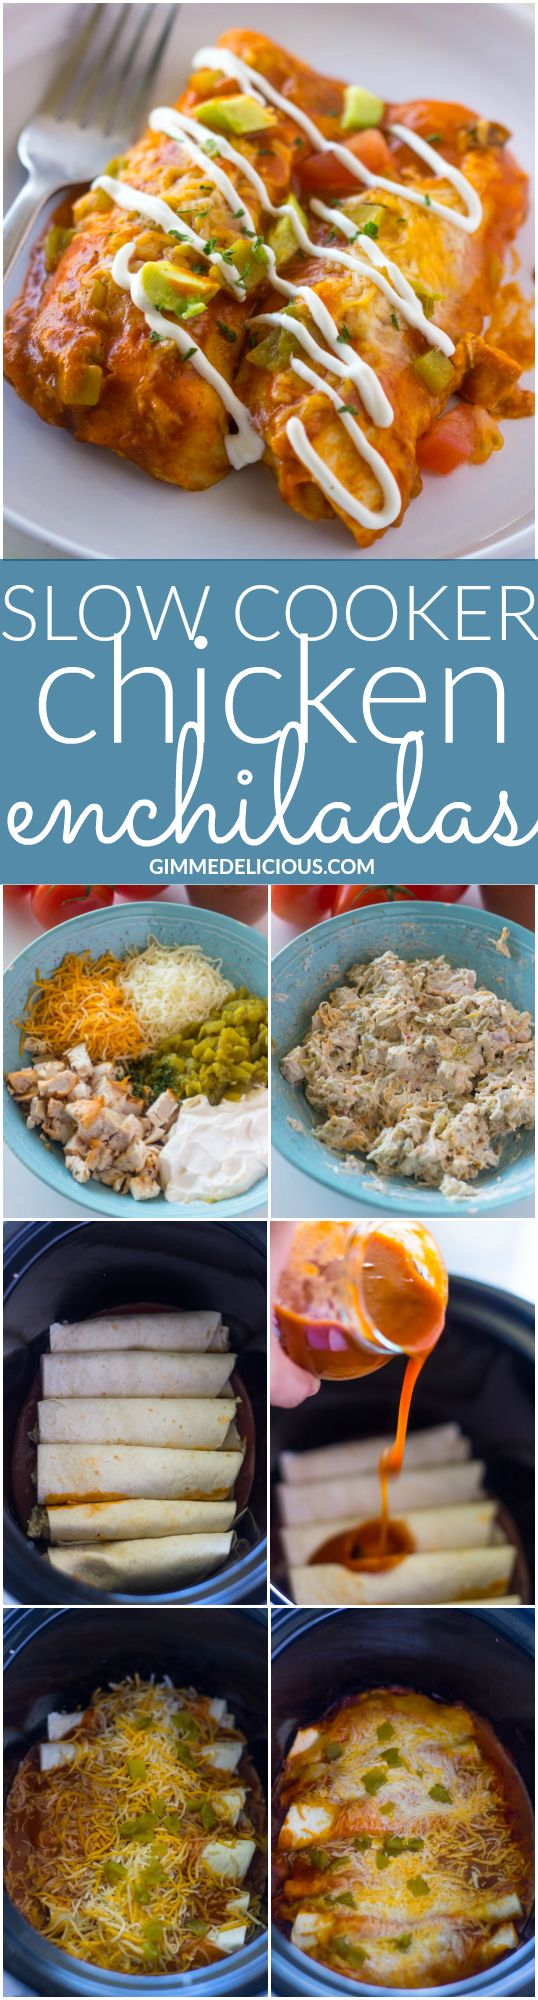 Slow Cooker Chicken Enchiladas | Gimme Delicious